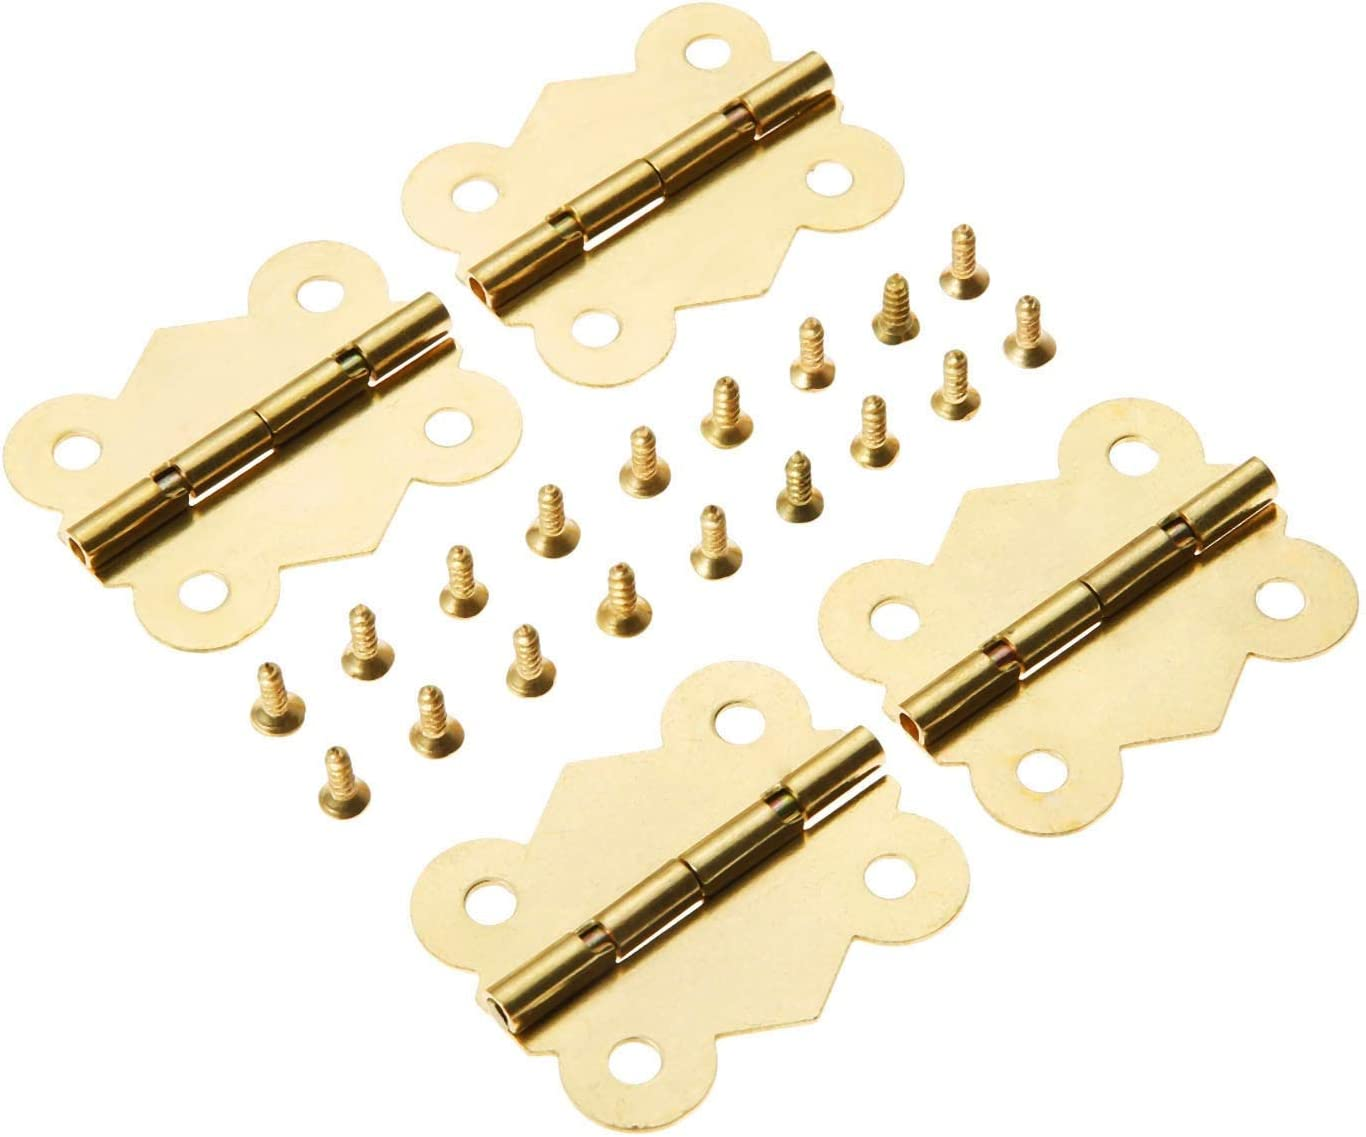 4Pcs Butterfly Sale Special Price Door Furniture Hinge 4 Drawer Holes Gold Attention brand Cabinet